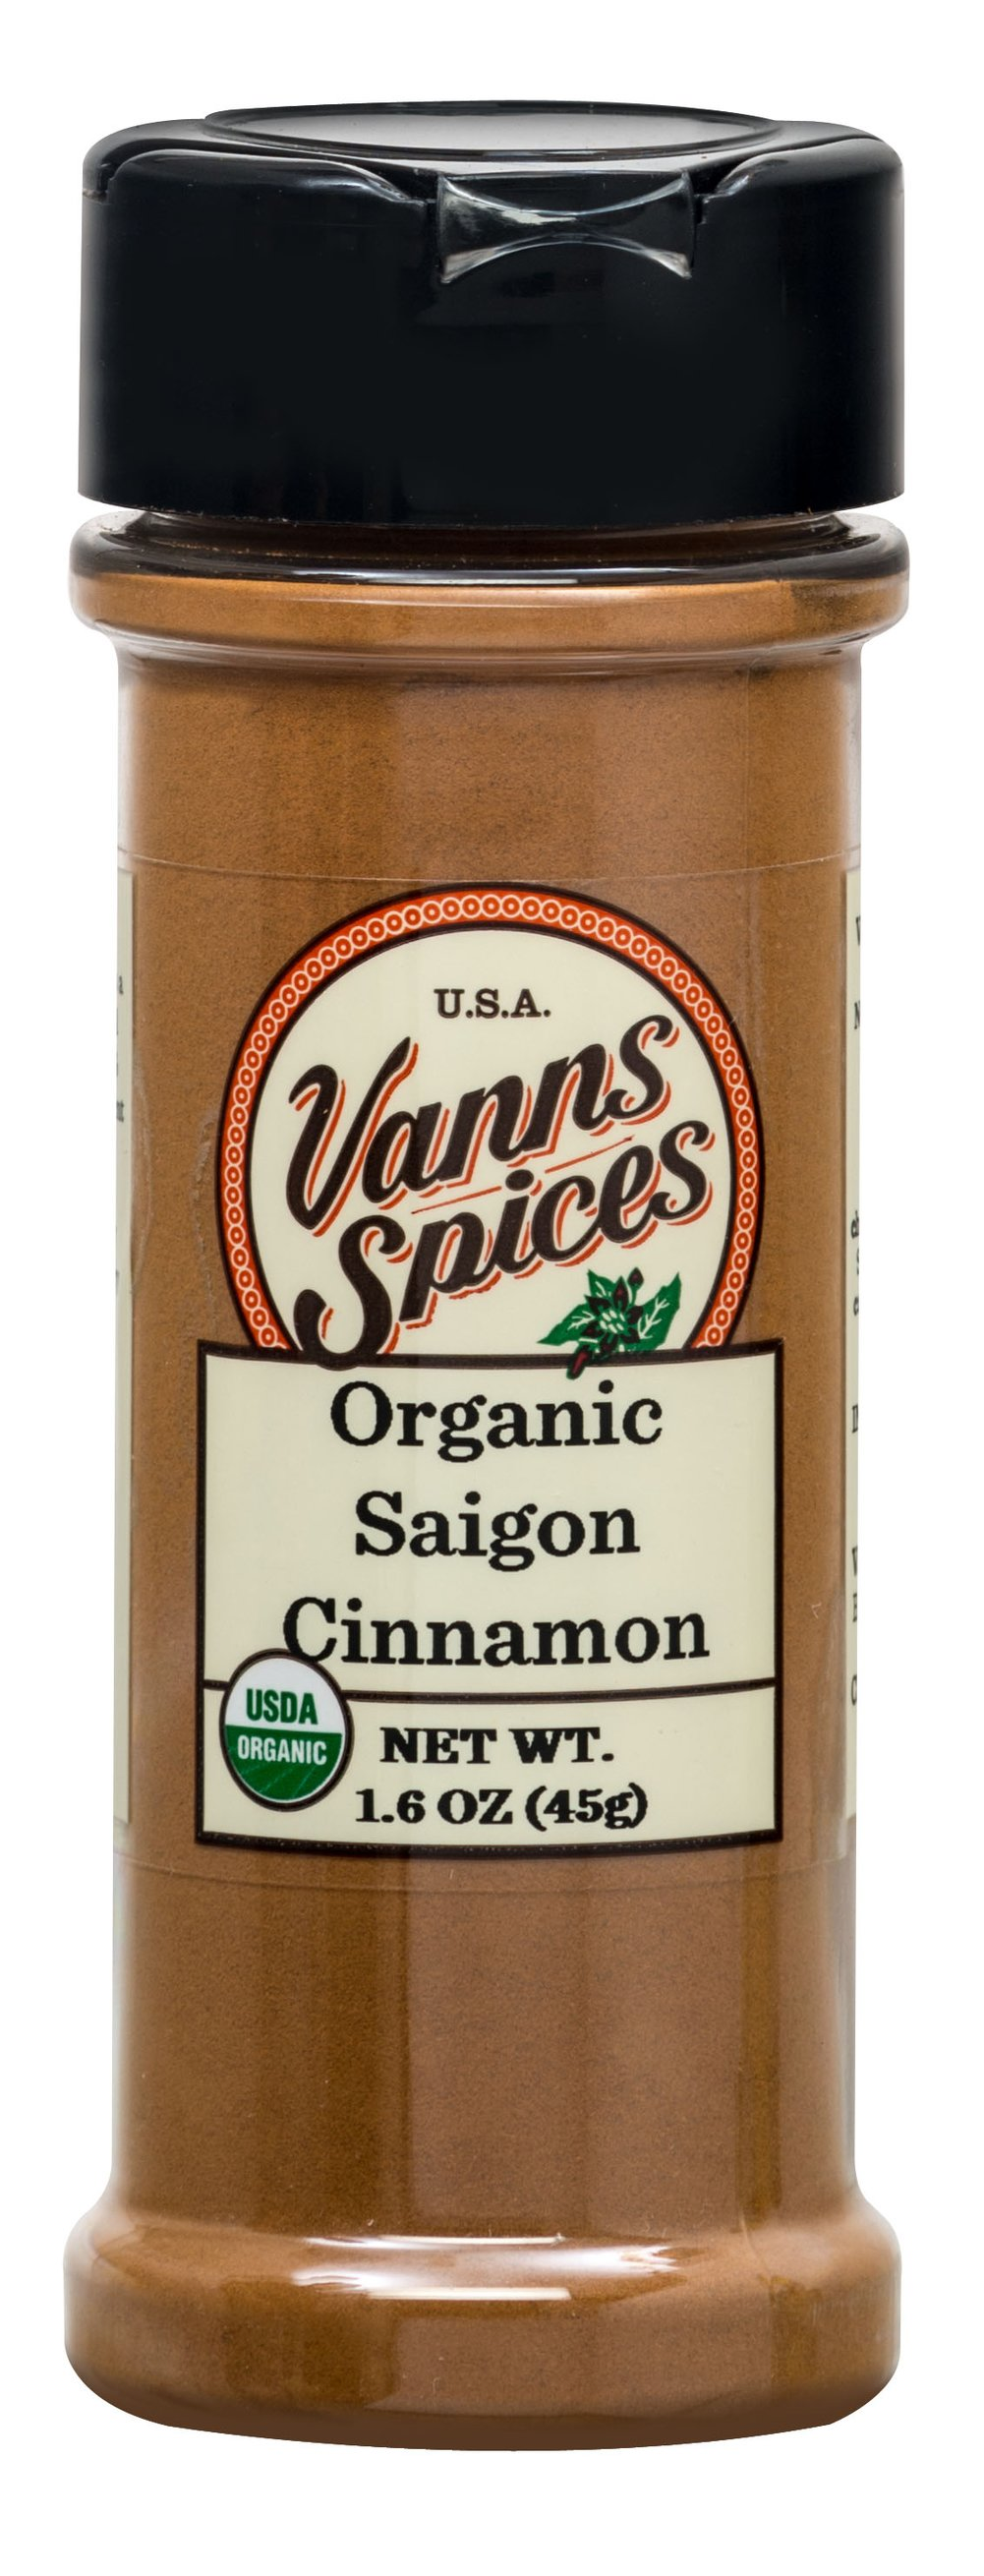 Organic Ground Saigon Cinnamon  1.6 oz Bottle  $7.99